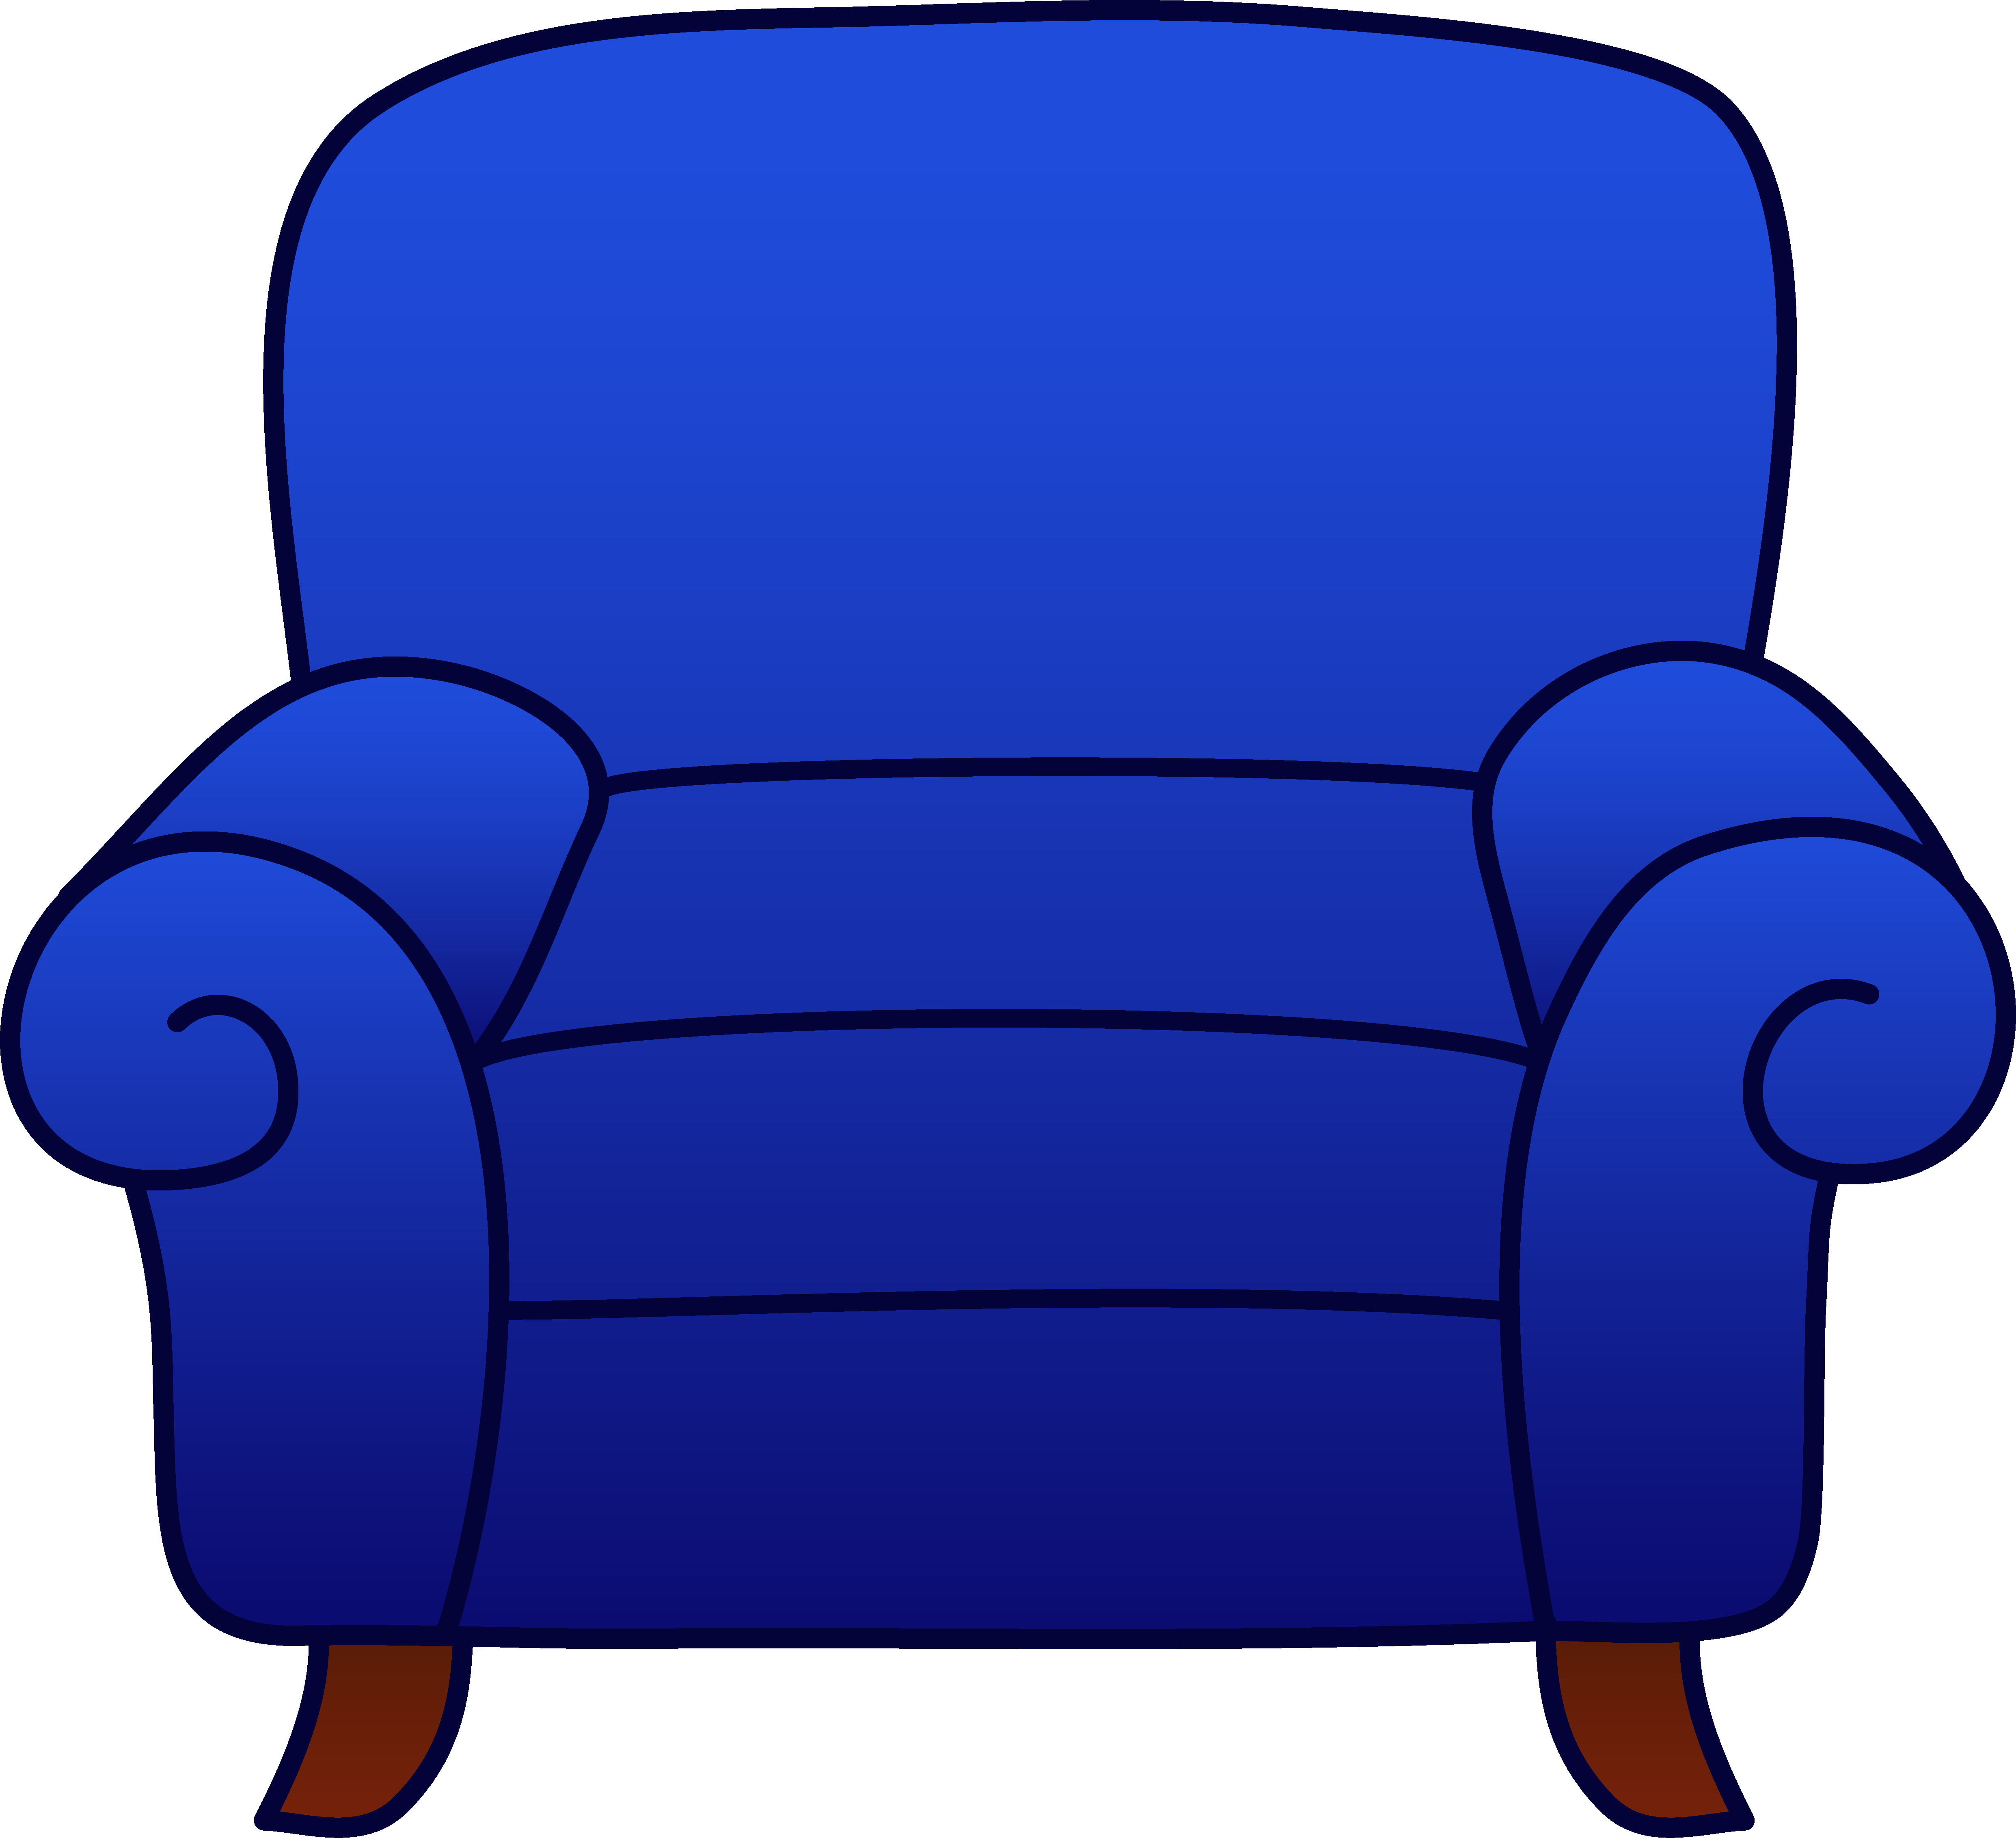 Arm chair clipart image transparent library Blue Armchair Clipart - Free Clip Art image transparent library